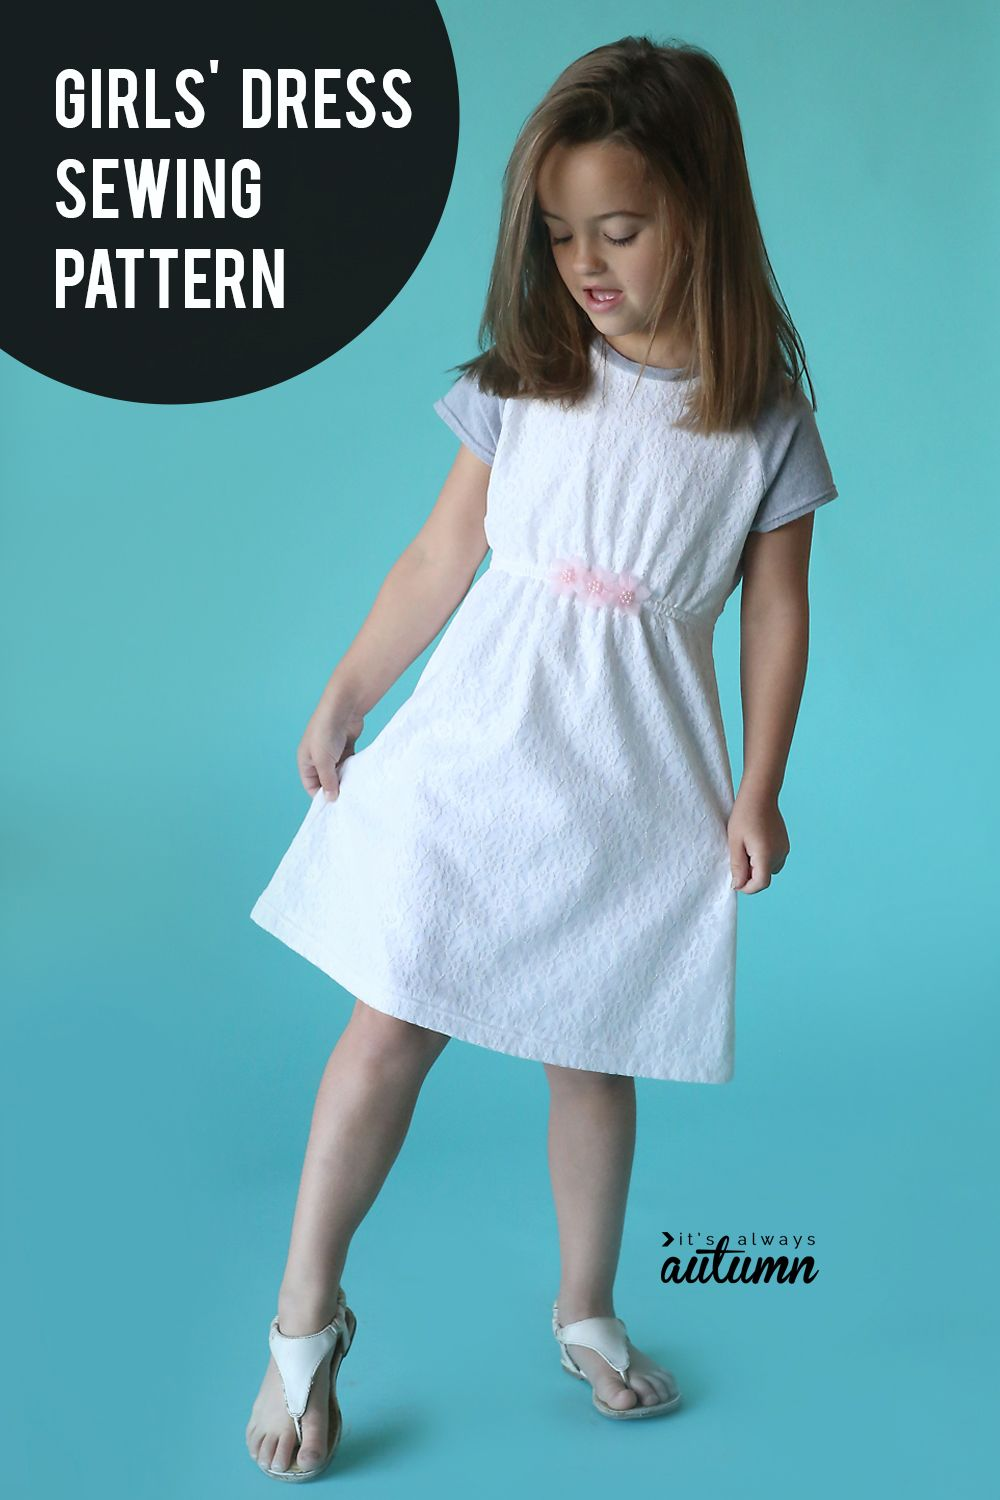 378656459107b Click through for the free sewing pattern for this cute girls' dress.  #itsalwaysautumn #sewingpattern #sewingforgirls #freesewingpattern